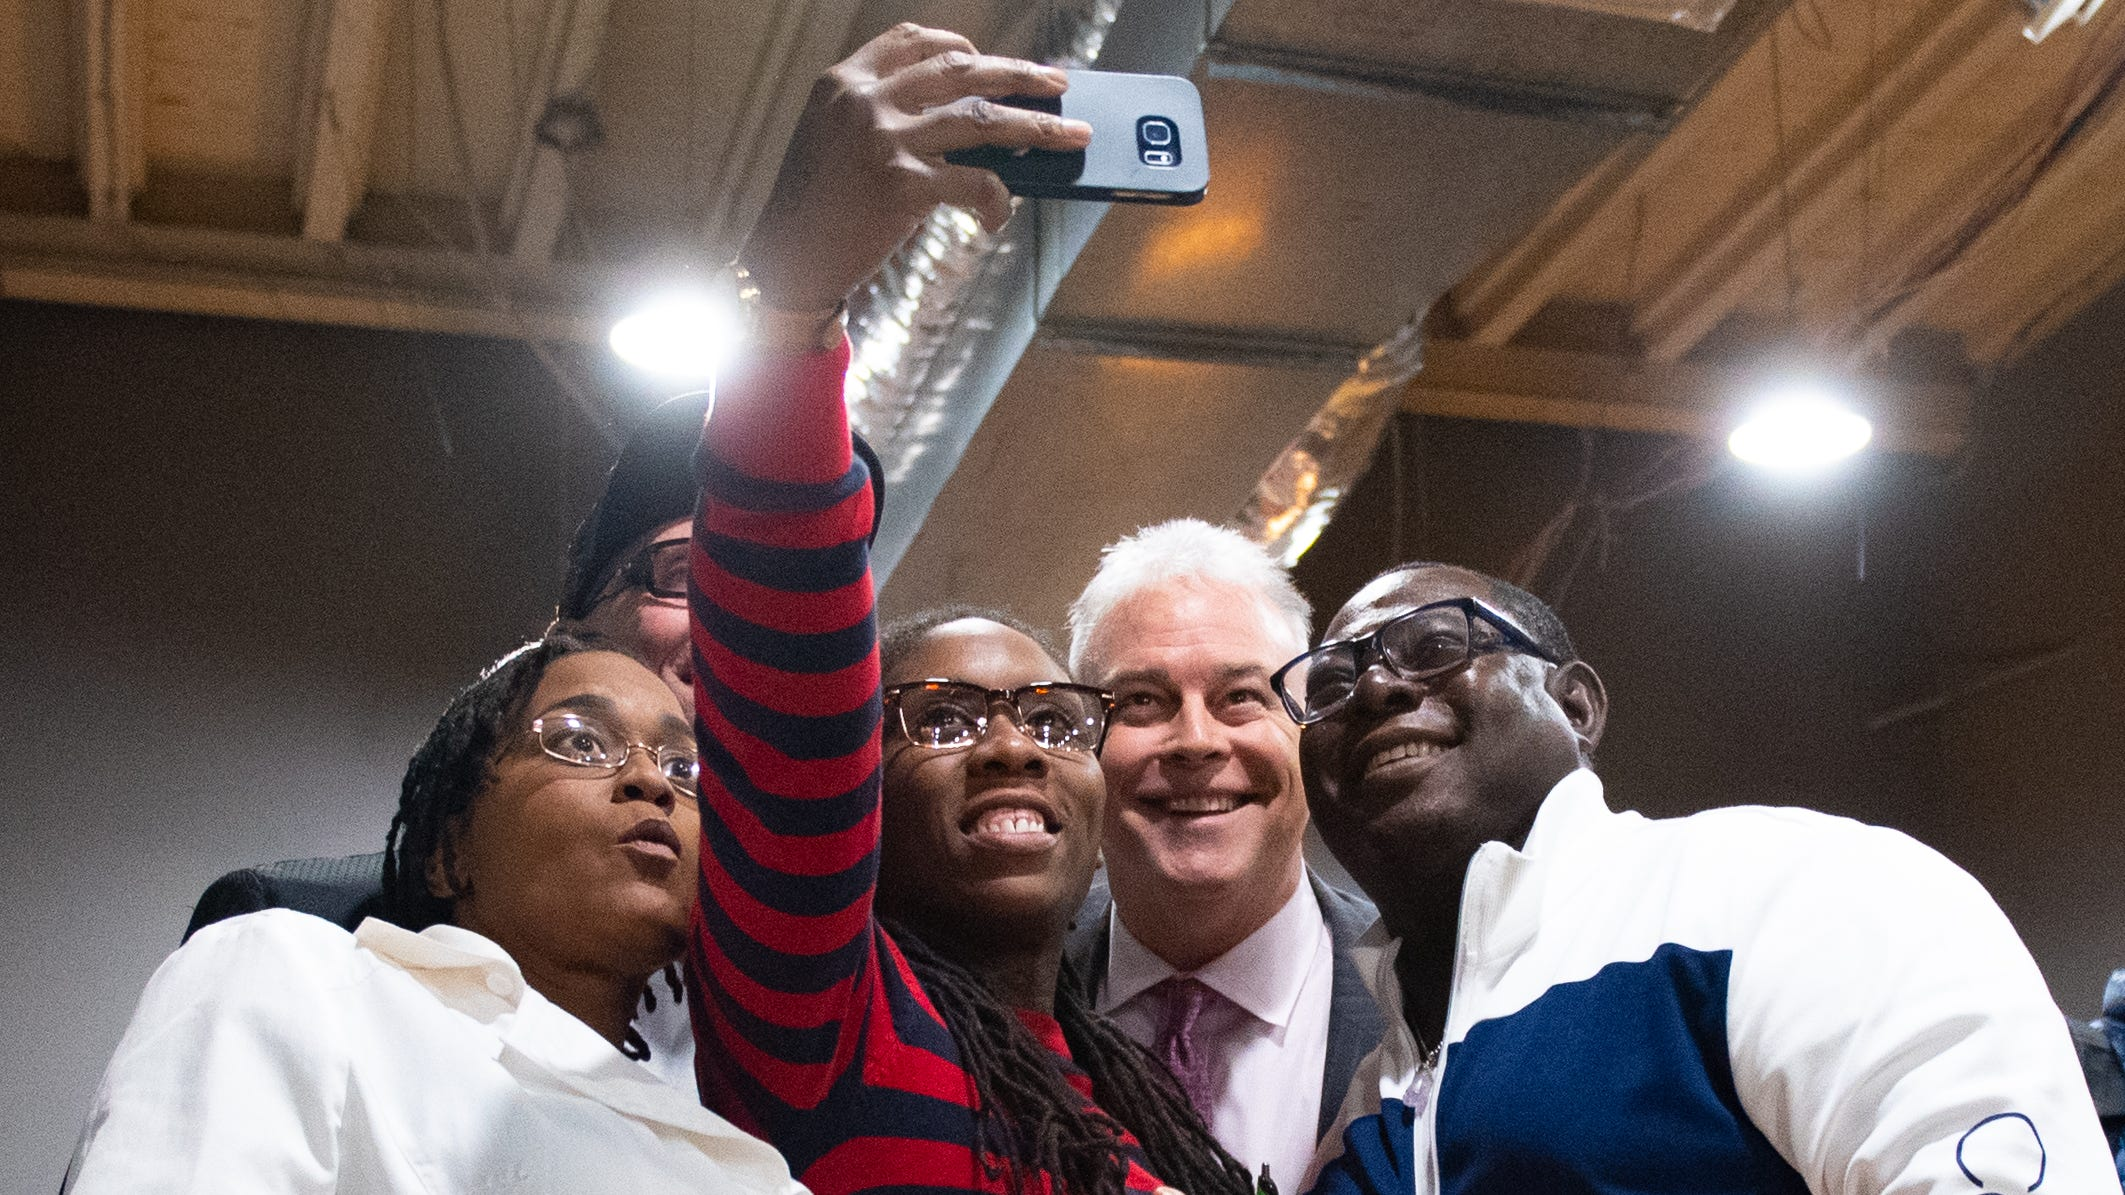 April Collier takes a selfie with party goers during the Jook Joint Global Inc. and LEXI Social Club grand opening, March 7, 2019.